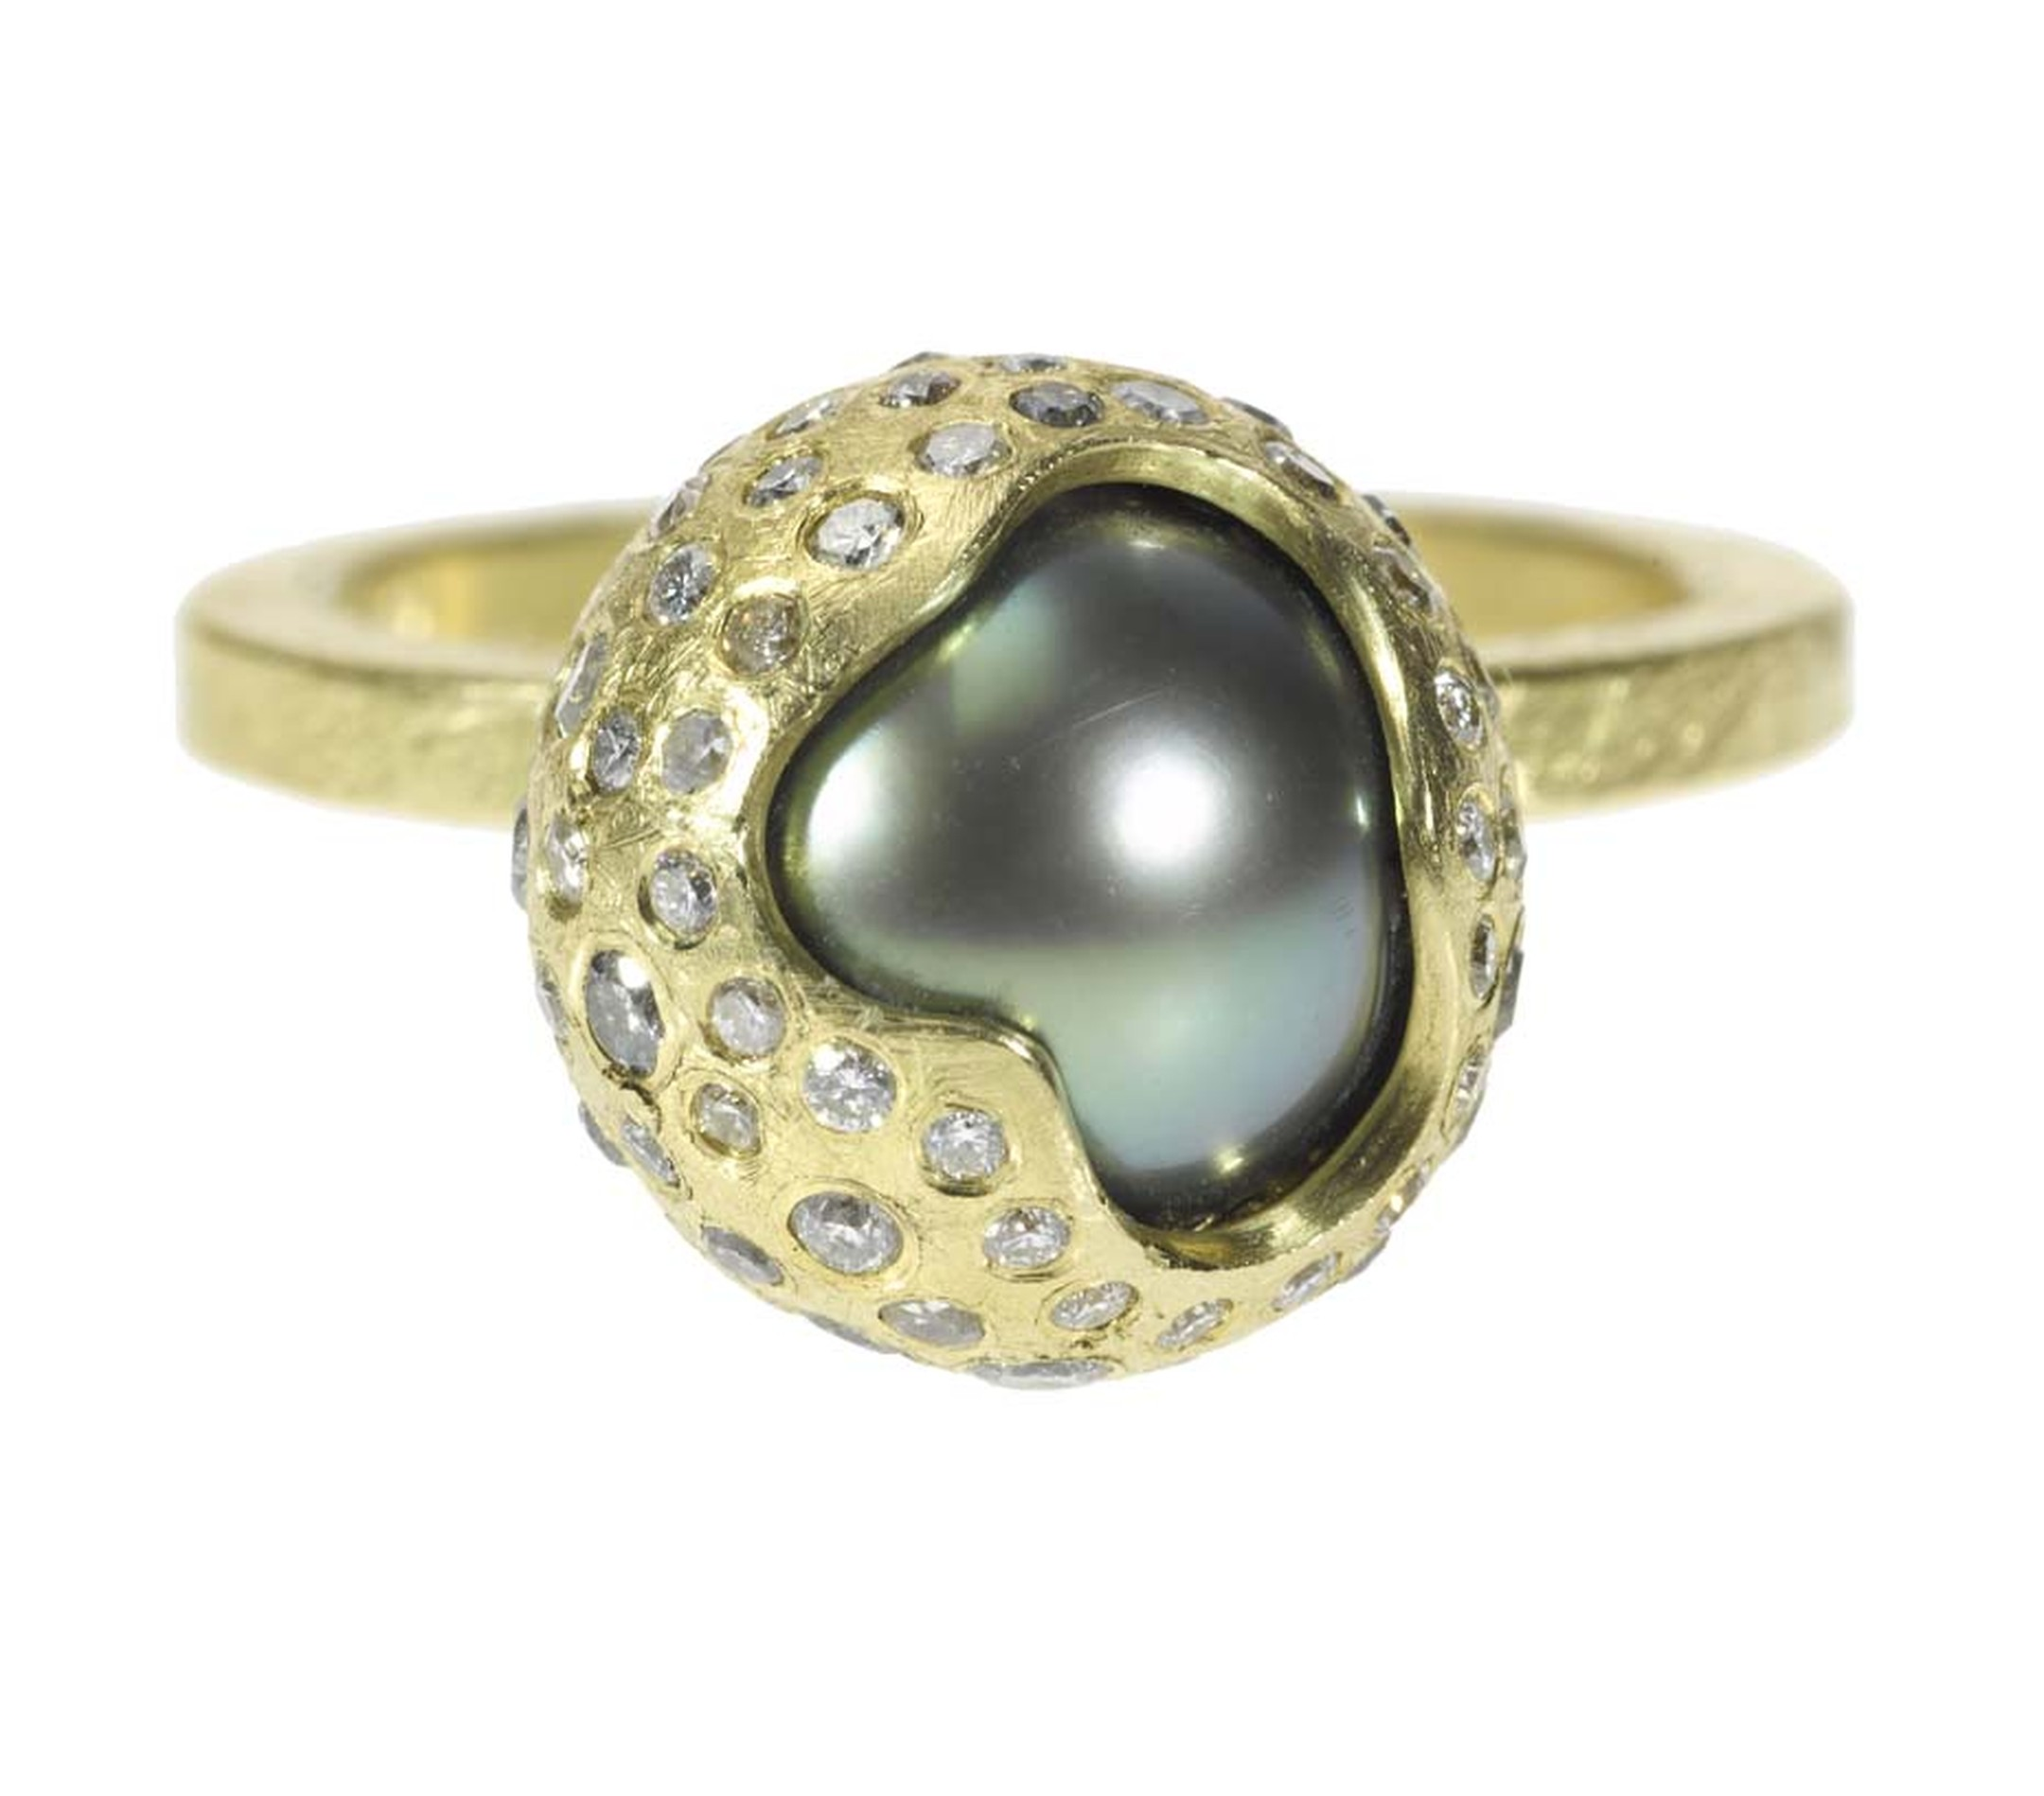 Todd Reed's new pearl collection featuring Tahitian pearl orbs which peek out of diamond-encrusted, textured metal casings.